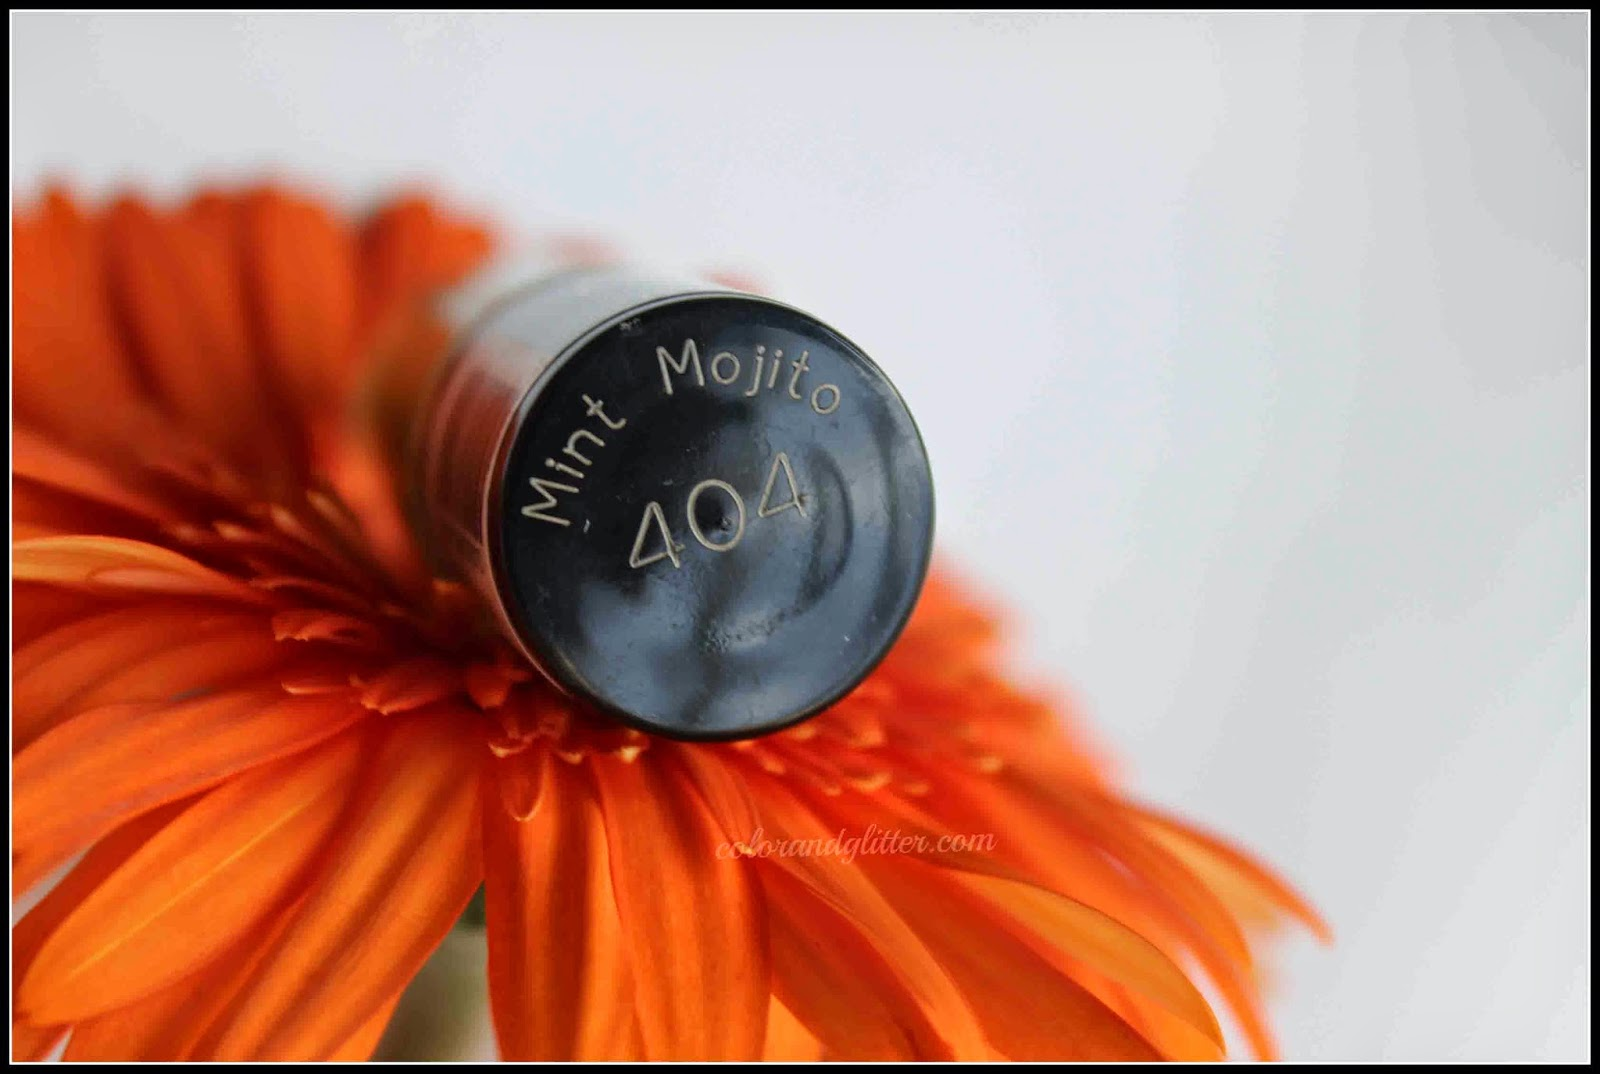 Maybelline Color Show Nail Polish in Mint Mojito (color number 404)    Review and Swatches